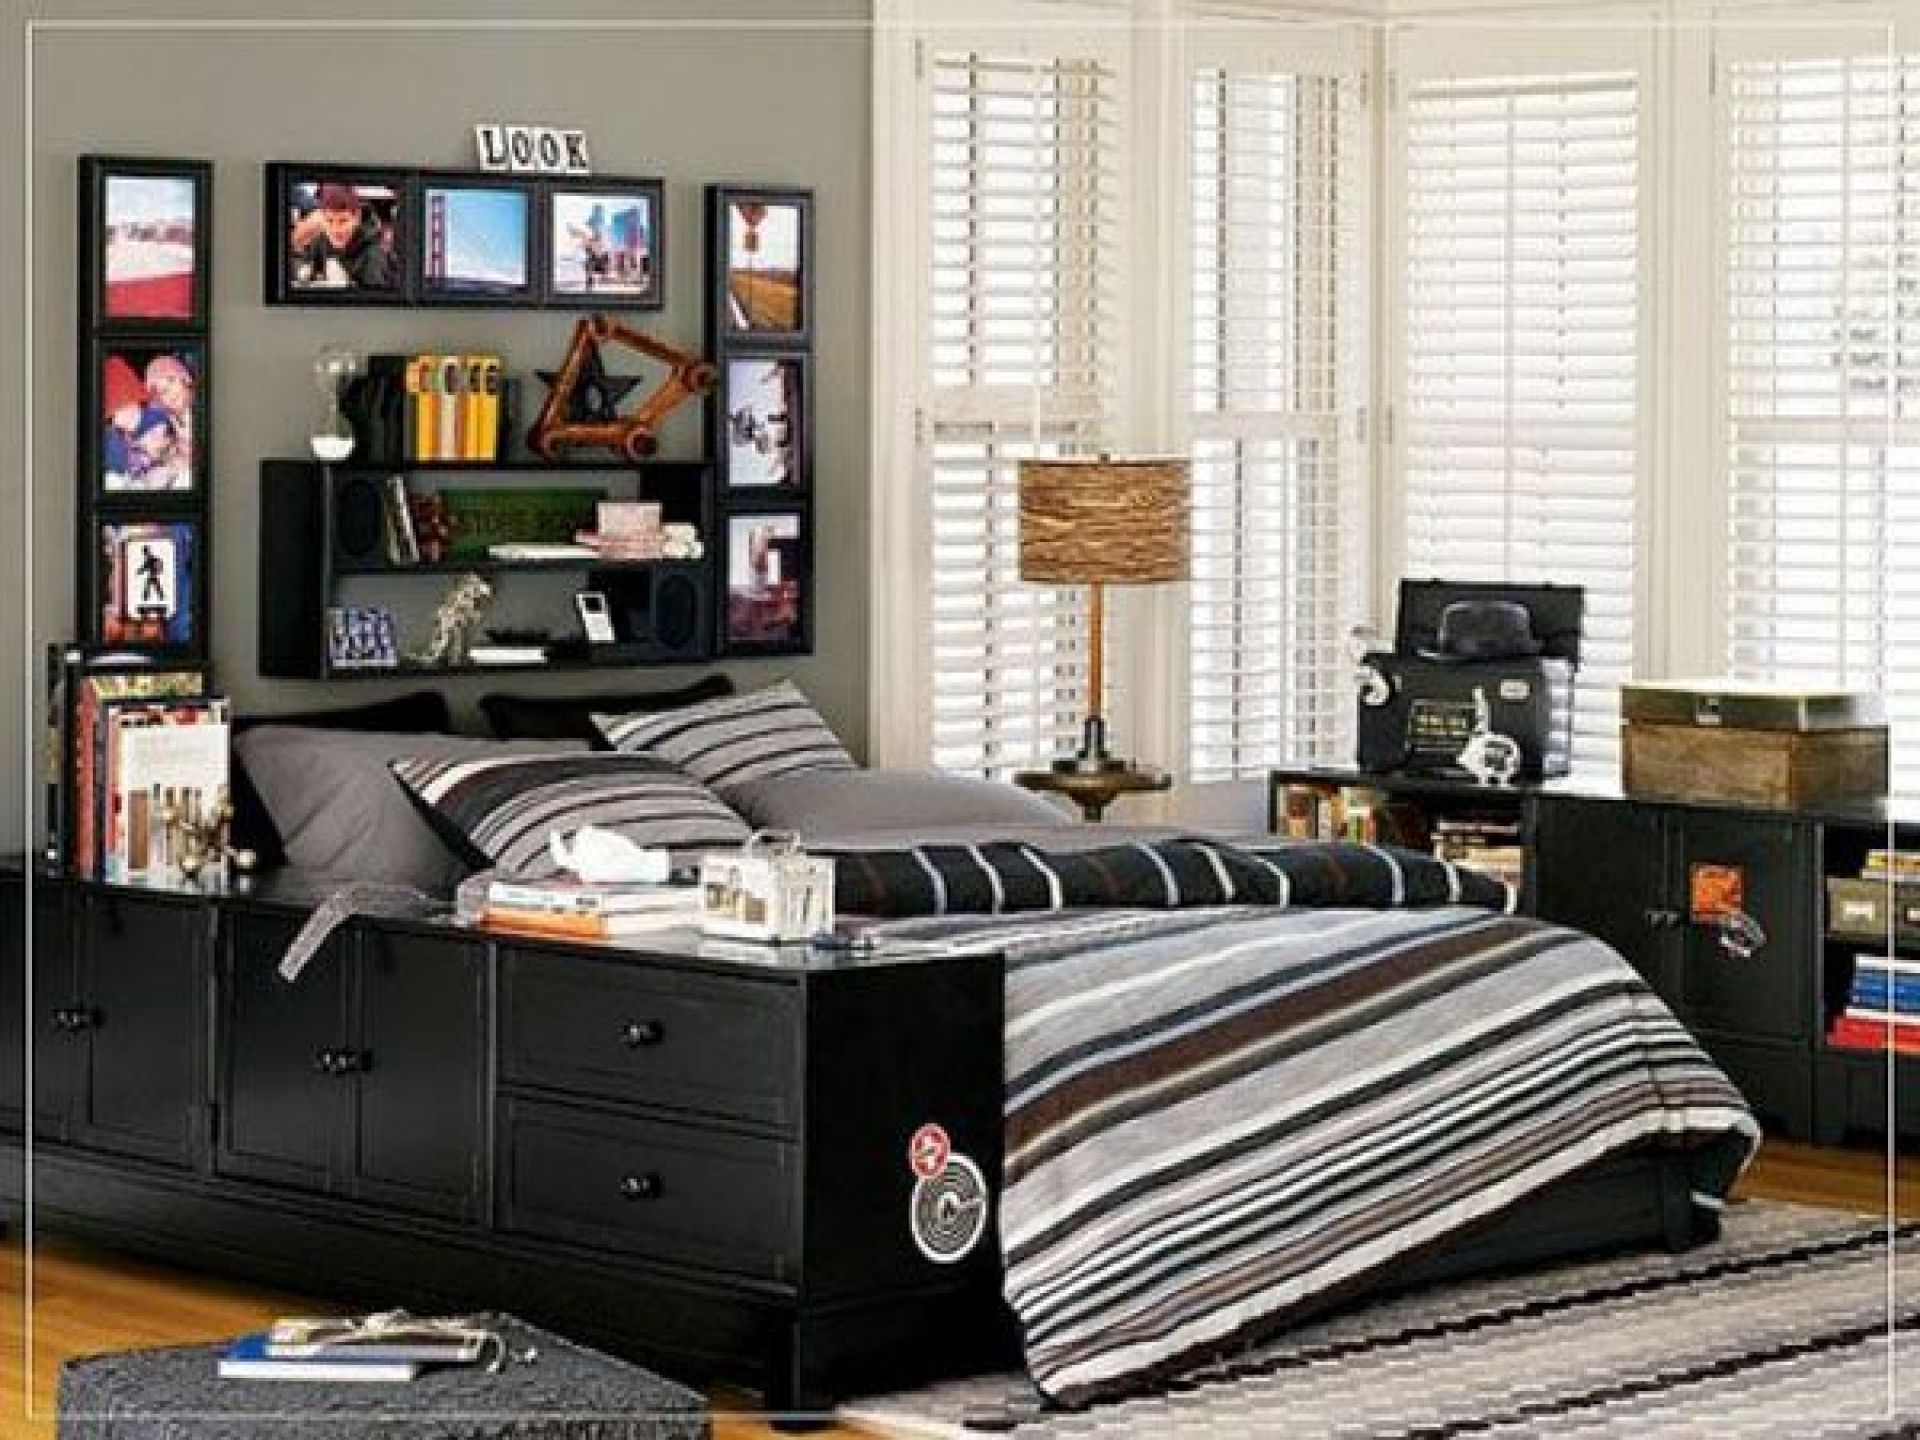 cool bedroom design black. teens room black white bed cover pillow carpet fur rug cabinet shelves frame picture transparent curtain desk lamp boys bedroom ideas mattress teen cool design